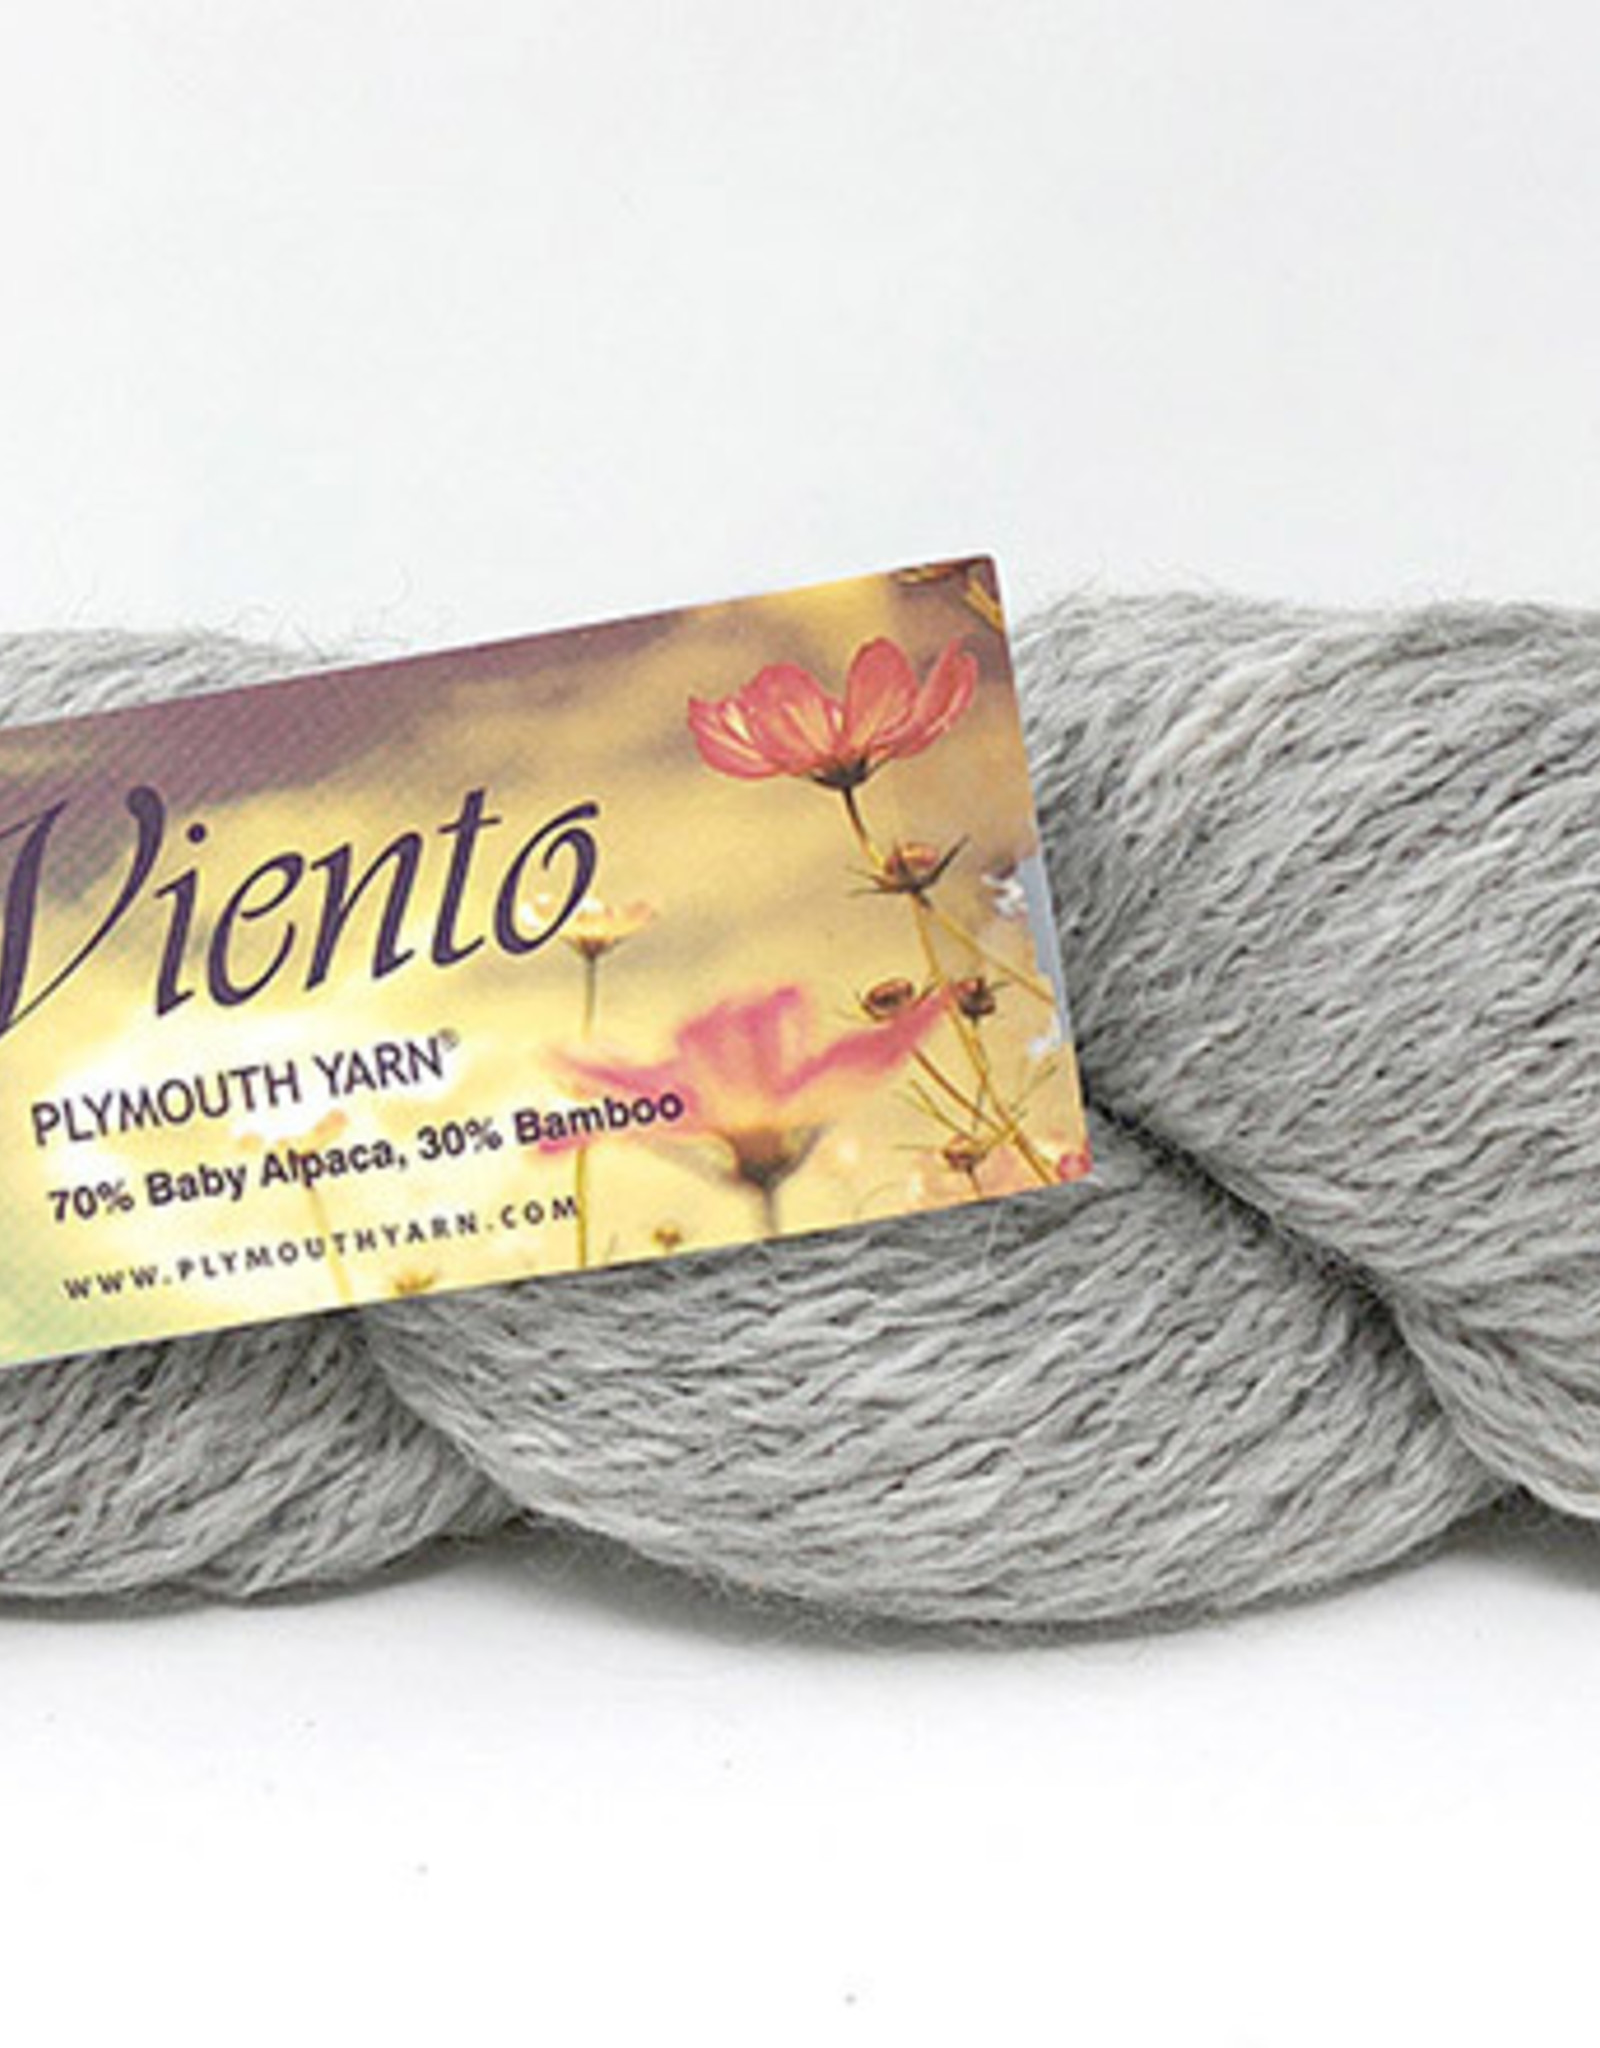 Plymouth Yarns Viento